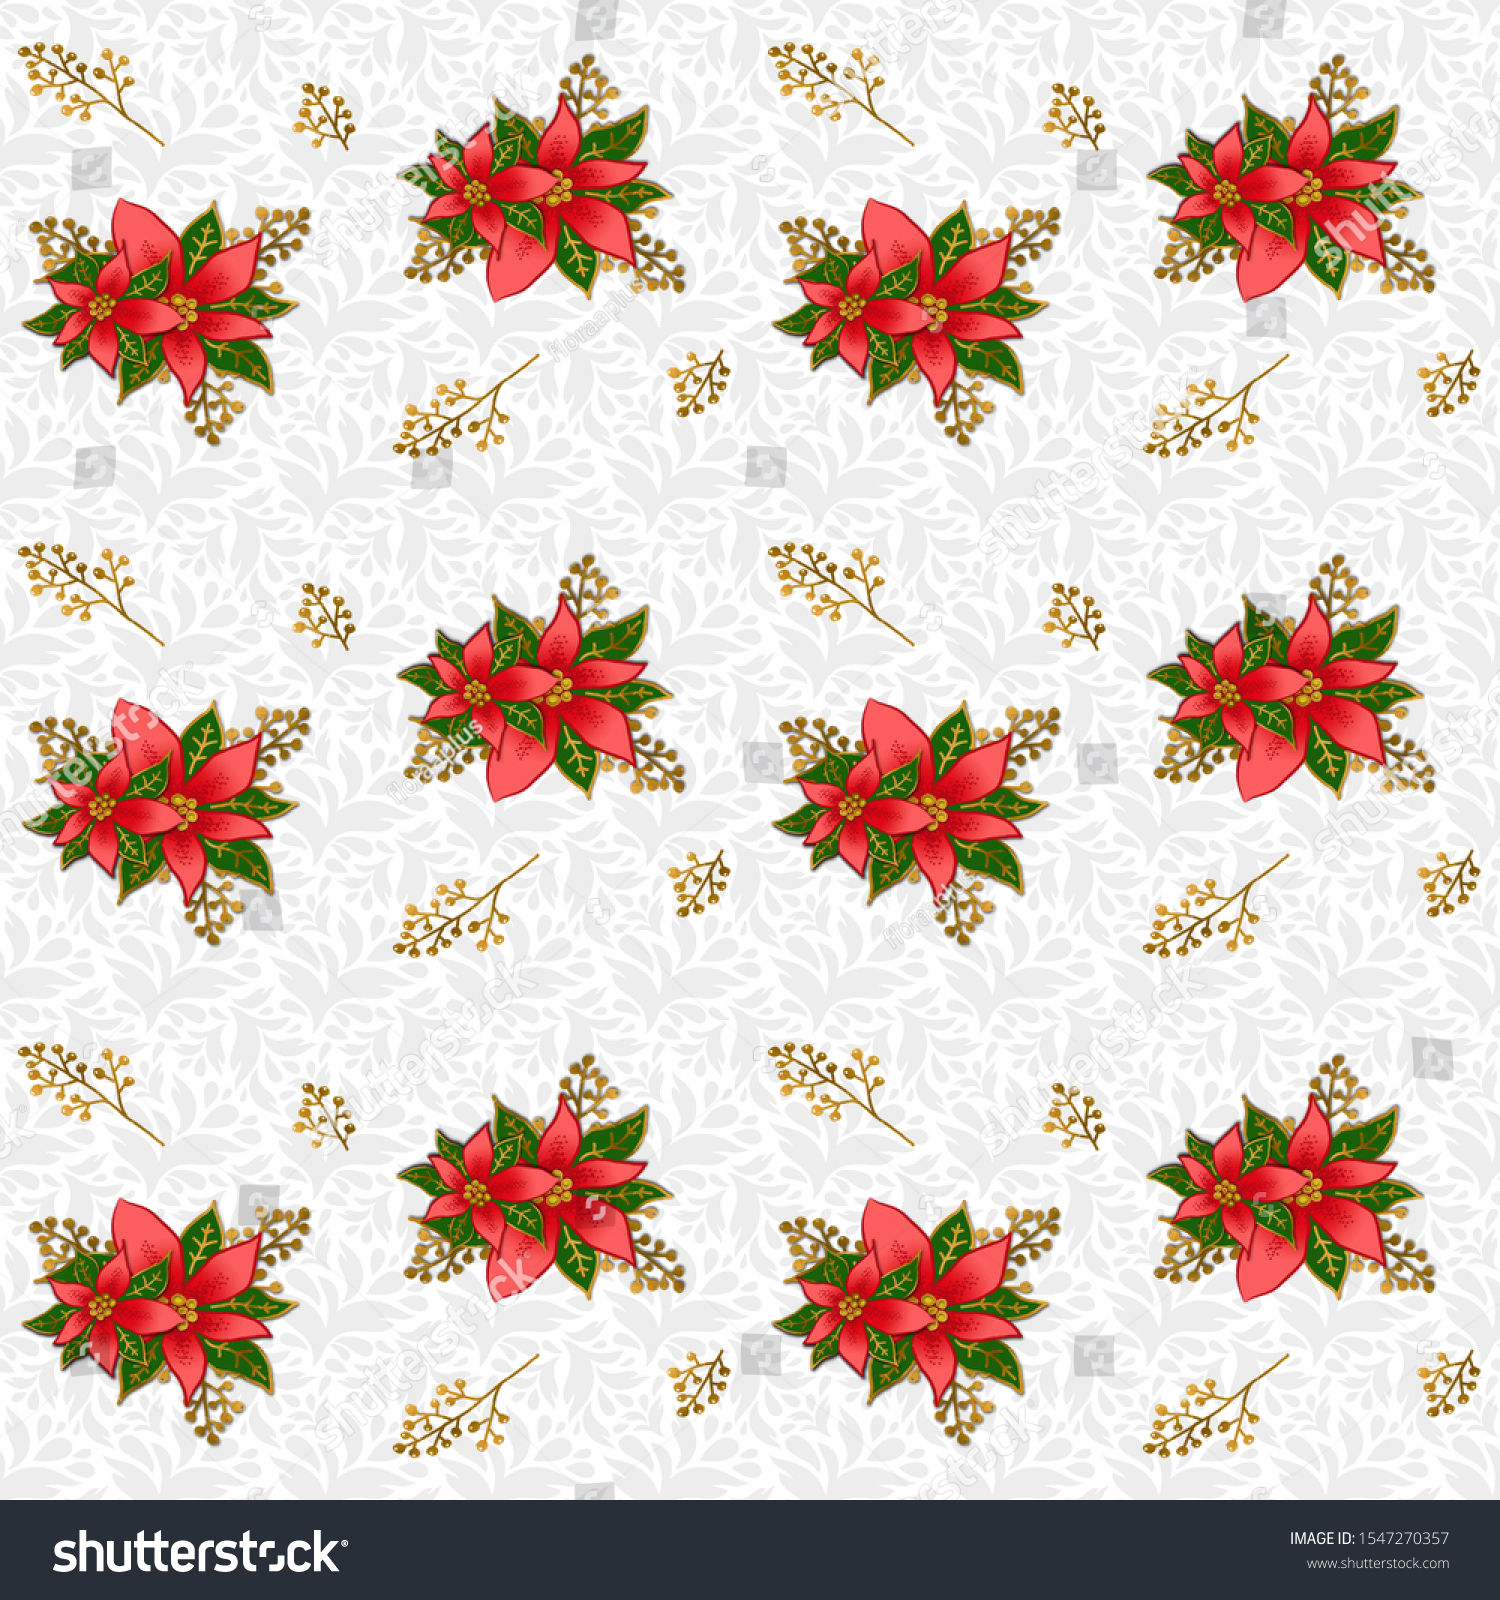 Christmas Poinsettia on a light gray background, seamless floral pattern. Paper for scrapbooking. Created for design, crafting and mass production of various goods.